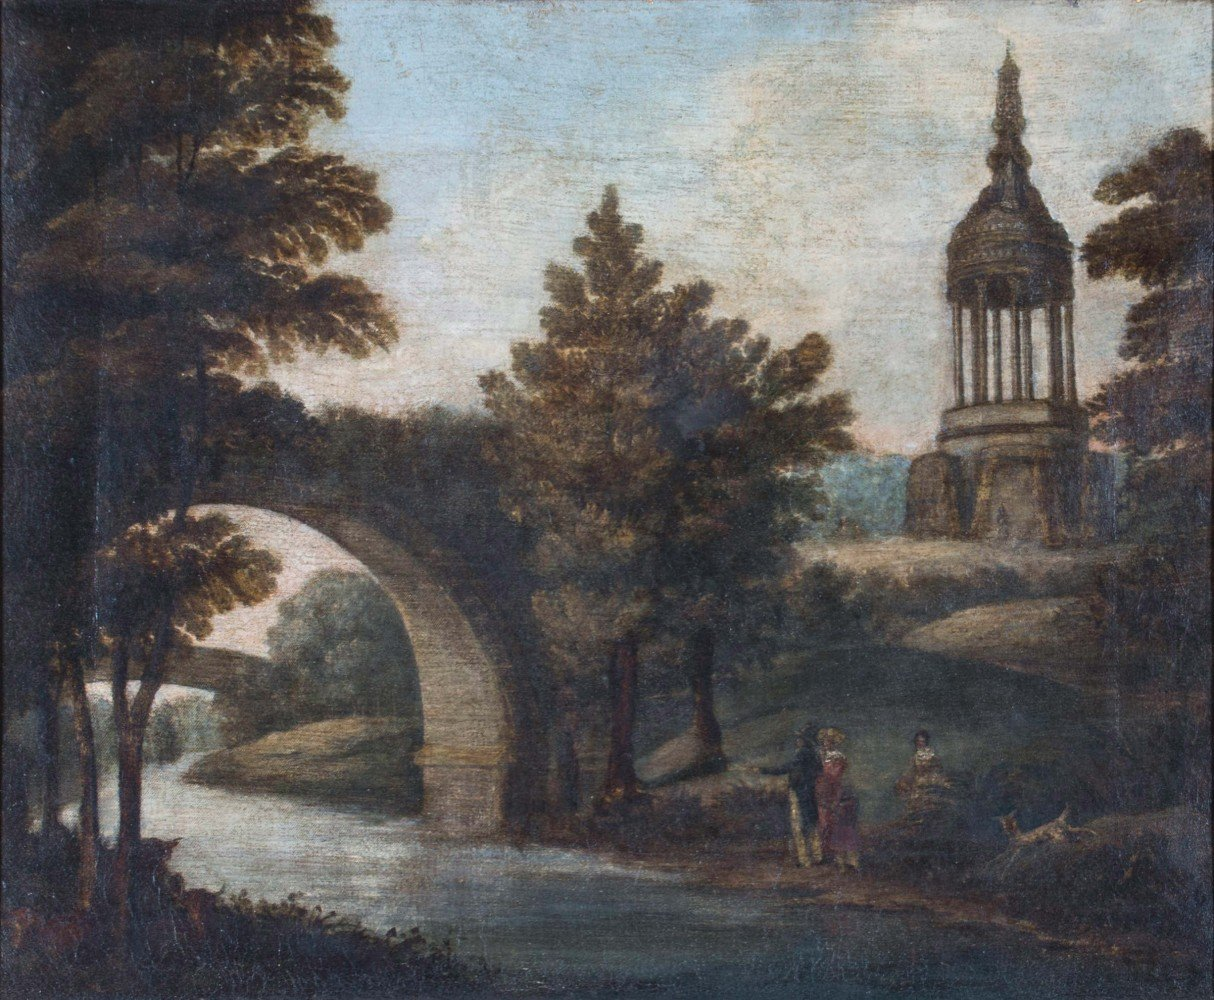 Figures in a Landscape, 18th/19th Century Continental